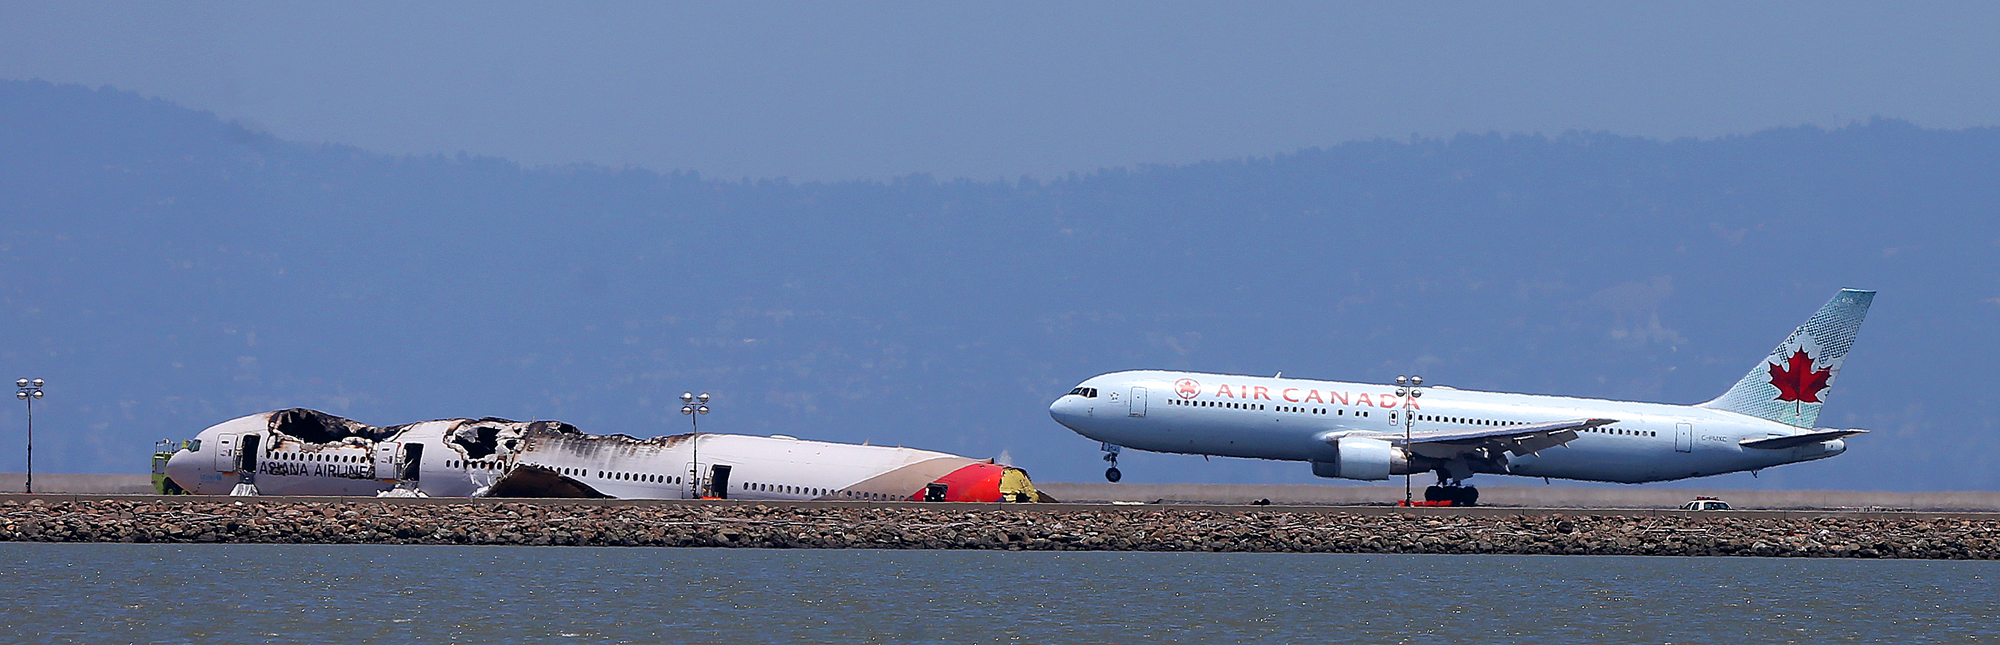 . An Air Canada jet passes the wreckage of Asiana Airlines Flight 214 as it lands at San Francisco International Airport on Sunday, July 7, 2013, in San Francisco, Calif.  Asiana Airlines Flight 214 crashed as it was landing at the airport on Saturday killing two passengers and injuring hundreds.   (Aric Crabb/Bay Area News Group)